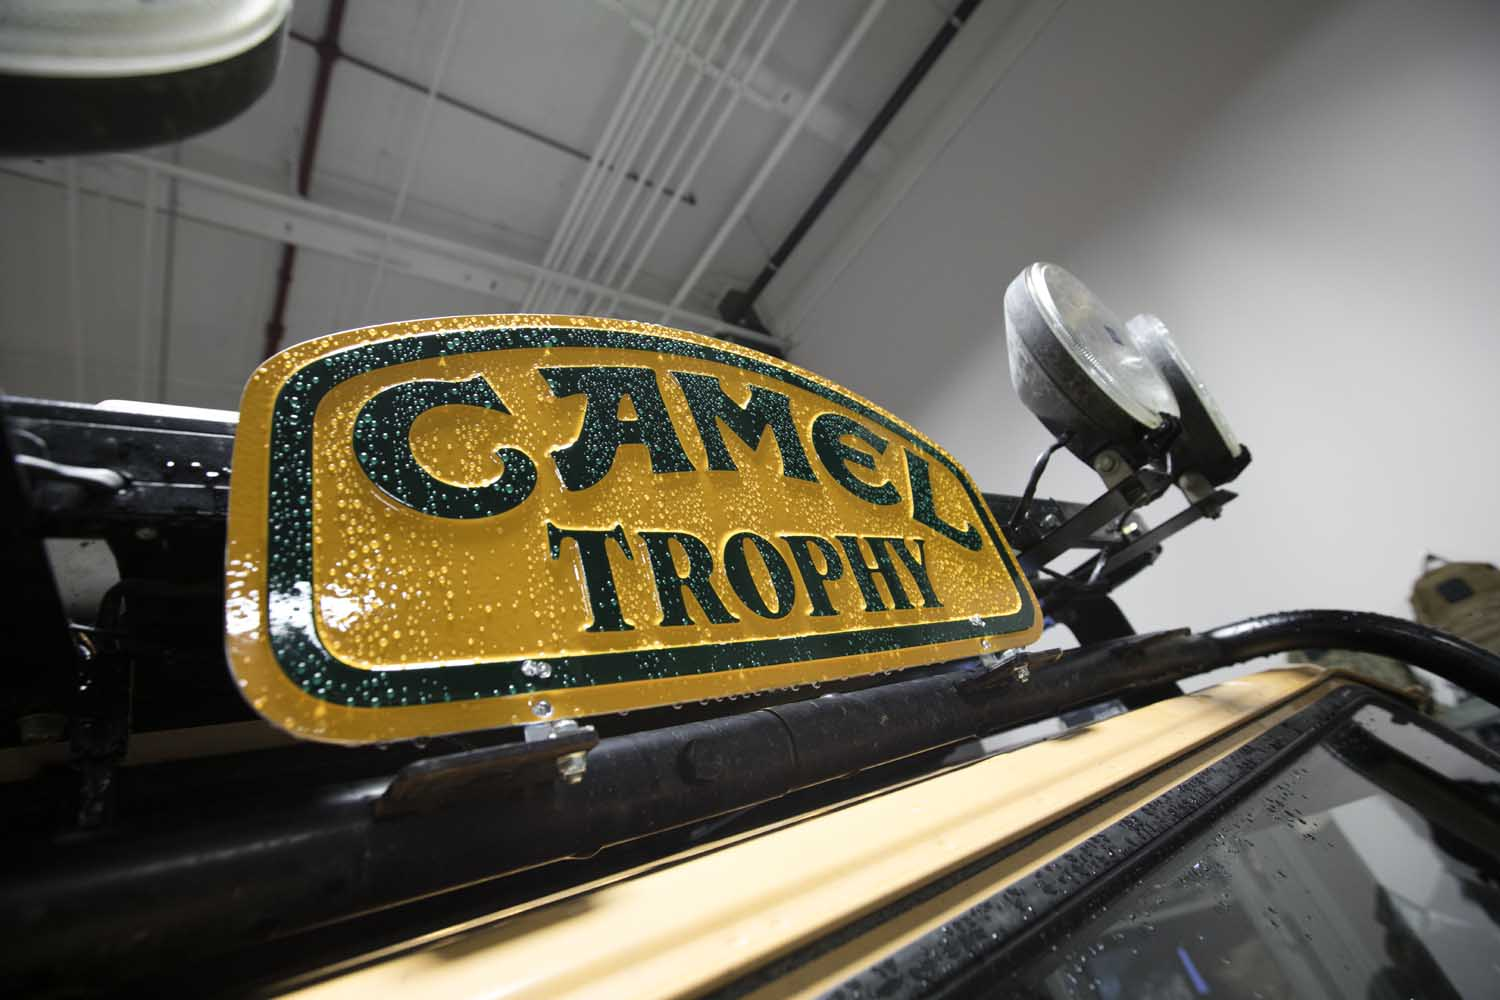 Return to Camel Trophy 009